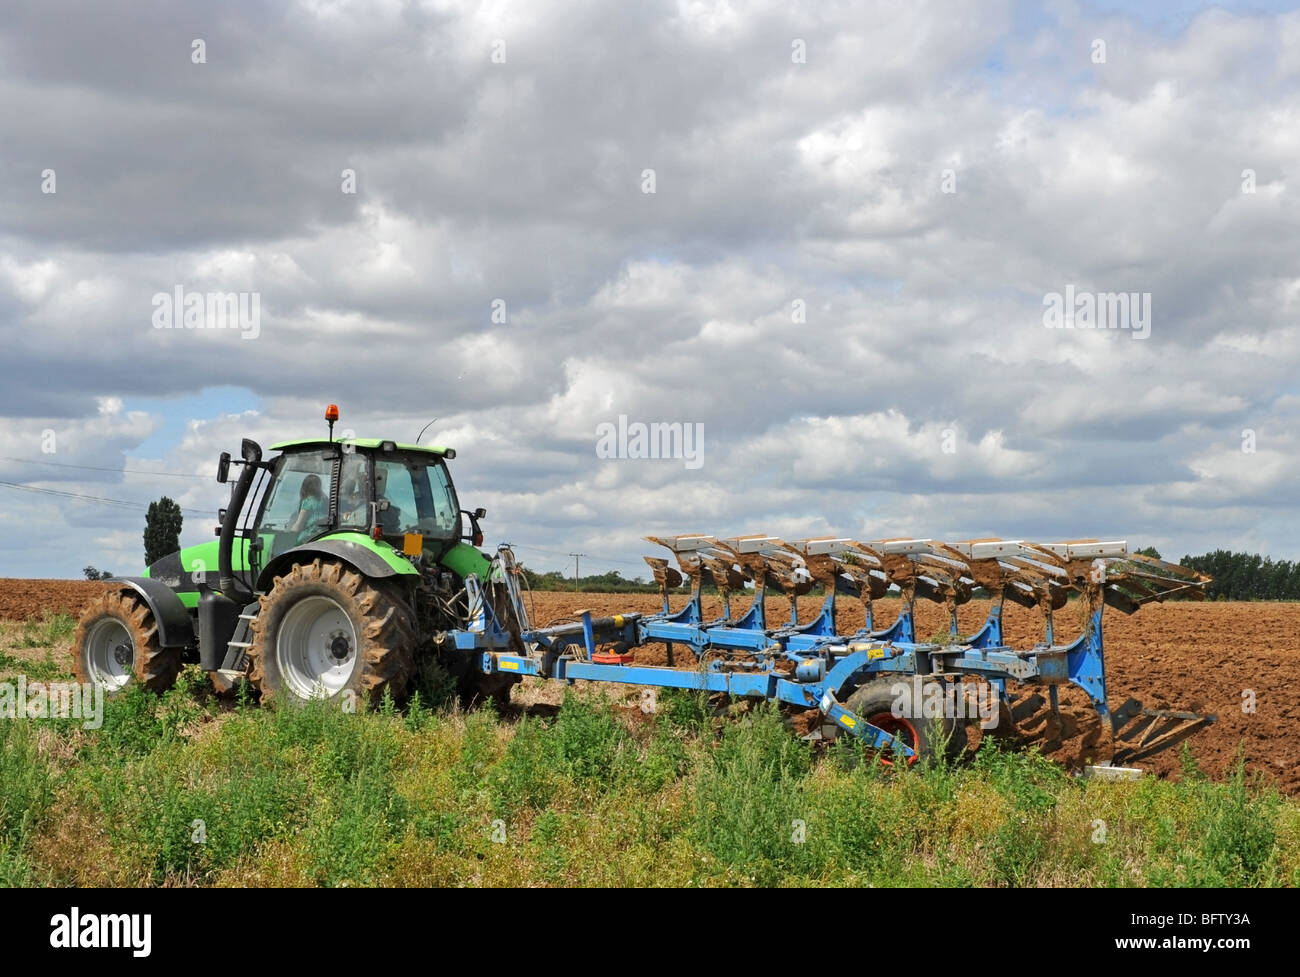 Green tractor ploughing a field ready for planting. - Stock Image